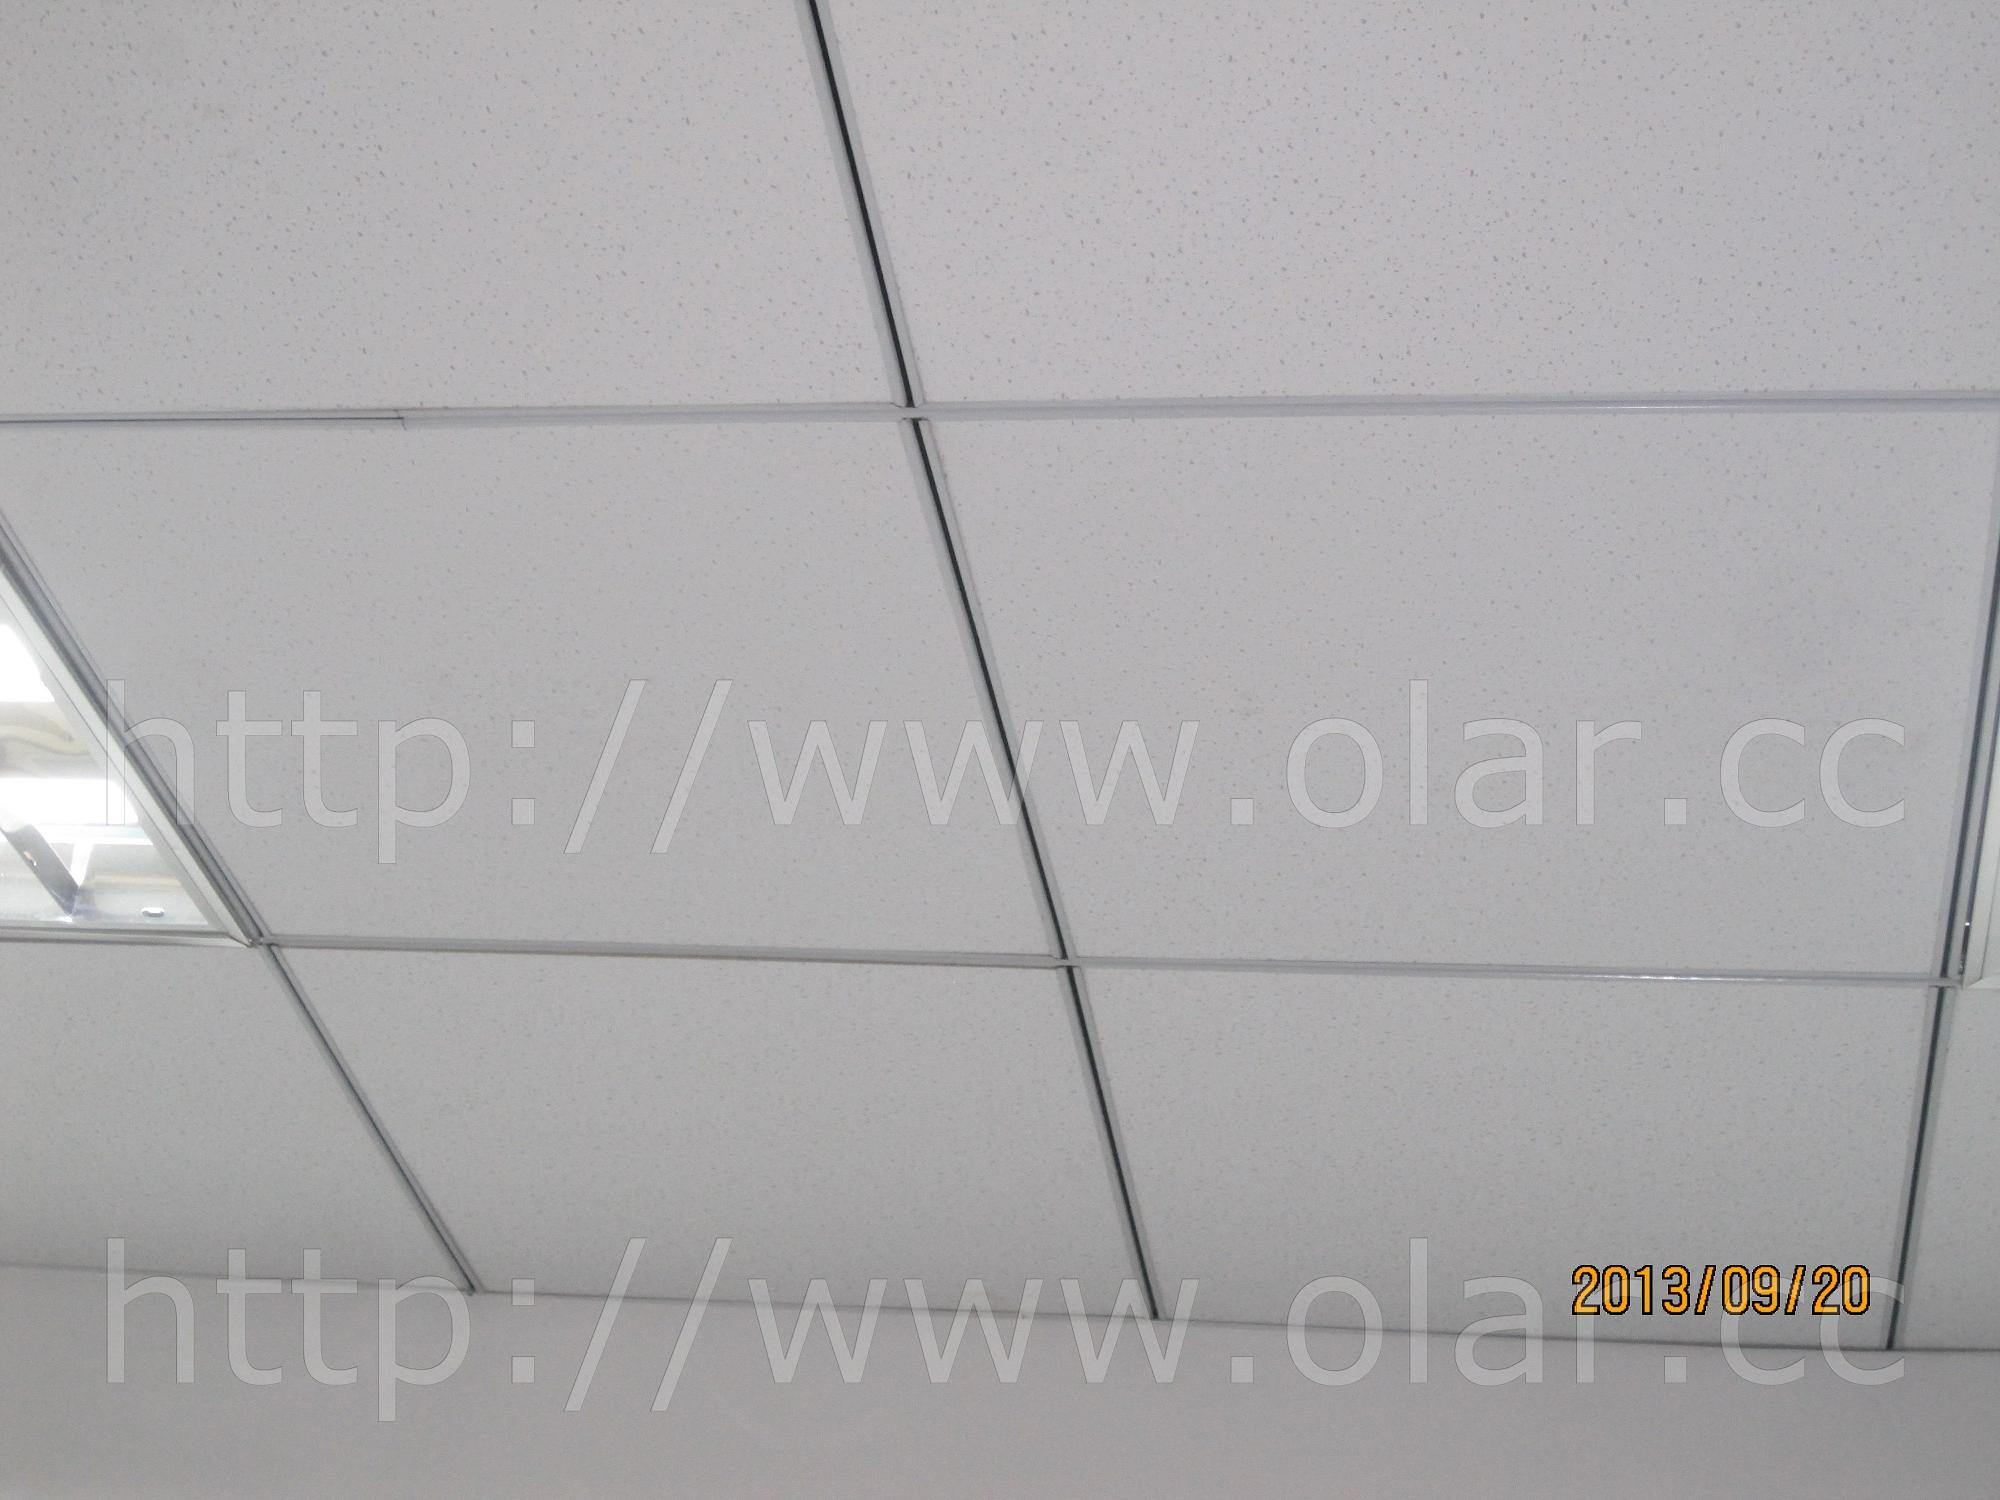 China building materials interior ceiling tiles photos pictures building materials interior ceiling tiles dailygadgetfo Image collections